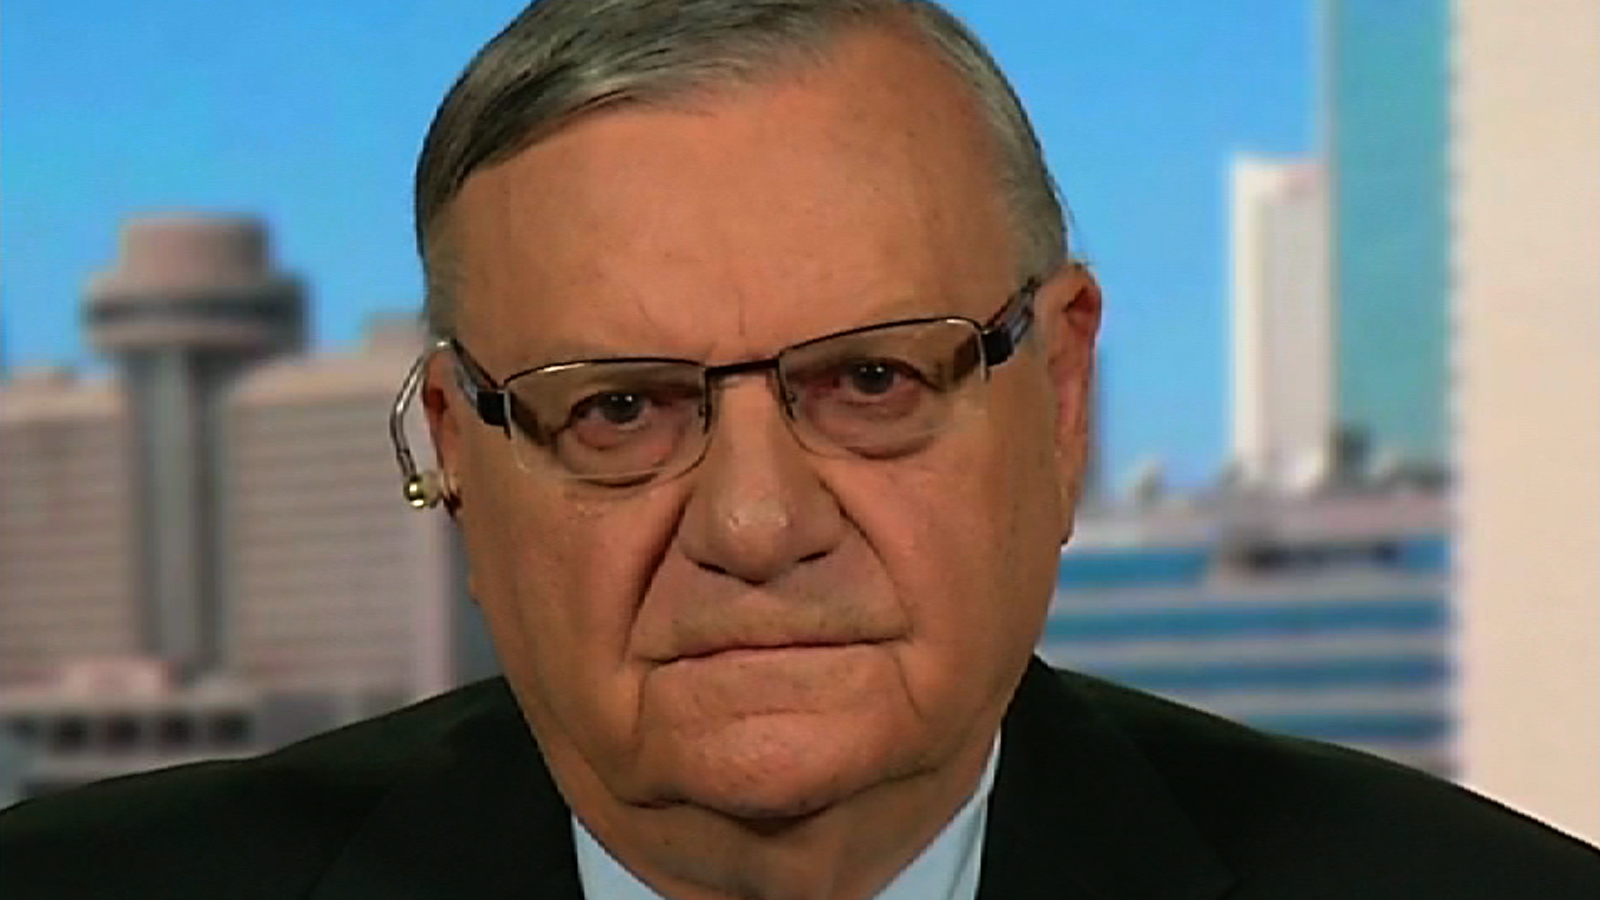 Joe arpaio obamas birth certificate is fraudulent cnn video xflitez Gallery